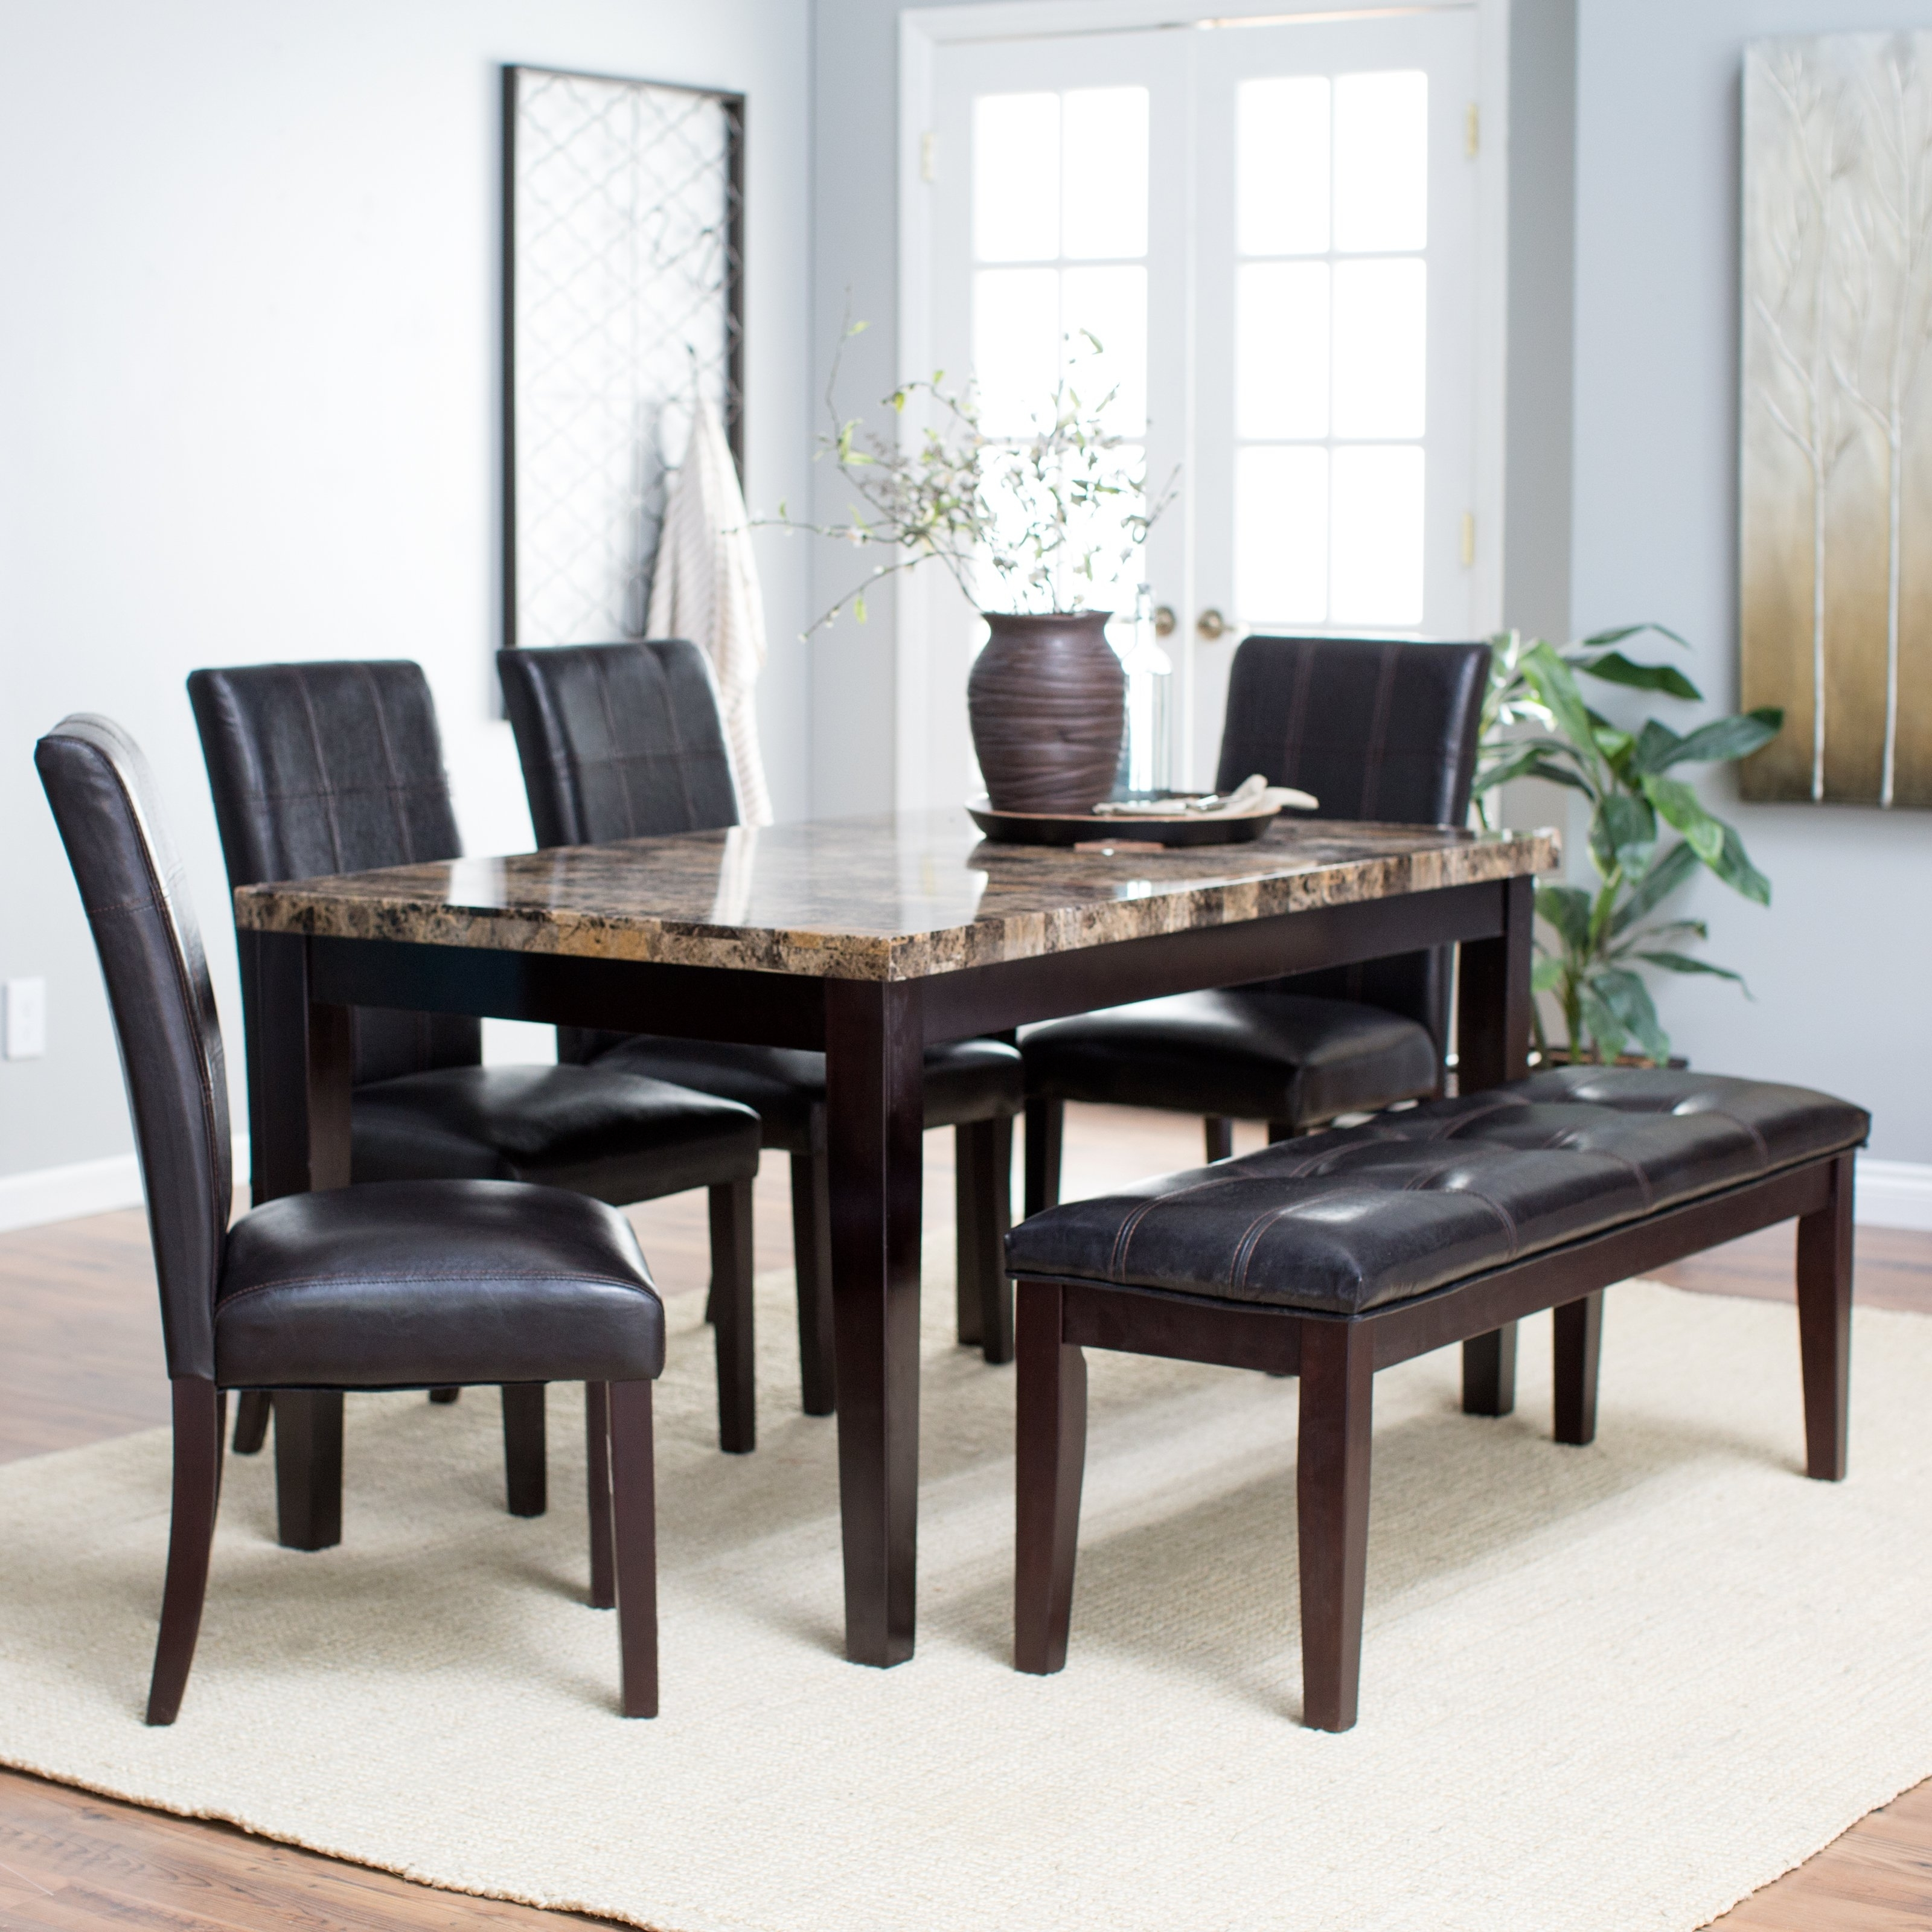 Most Up To Date Types Of Dining Table Sets – Pickndecor Within Dining Table Sets (View 17 of 25)